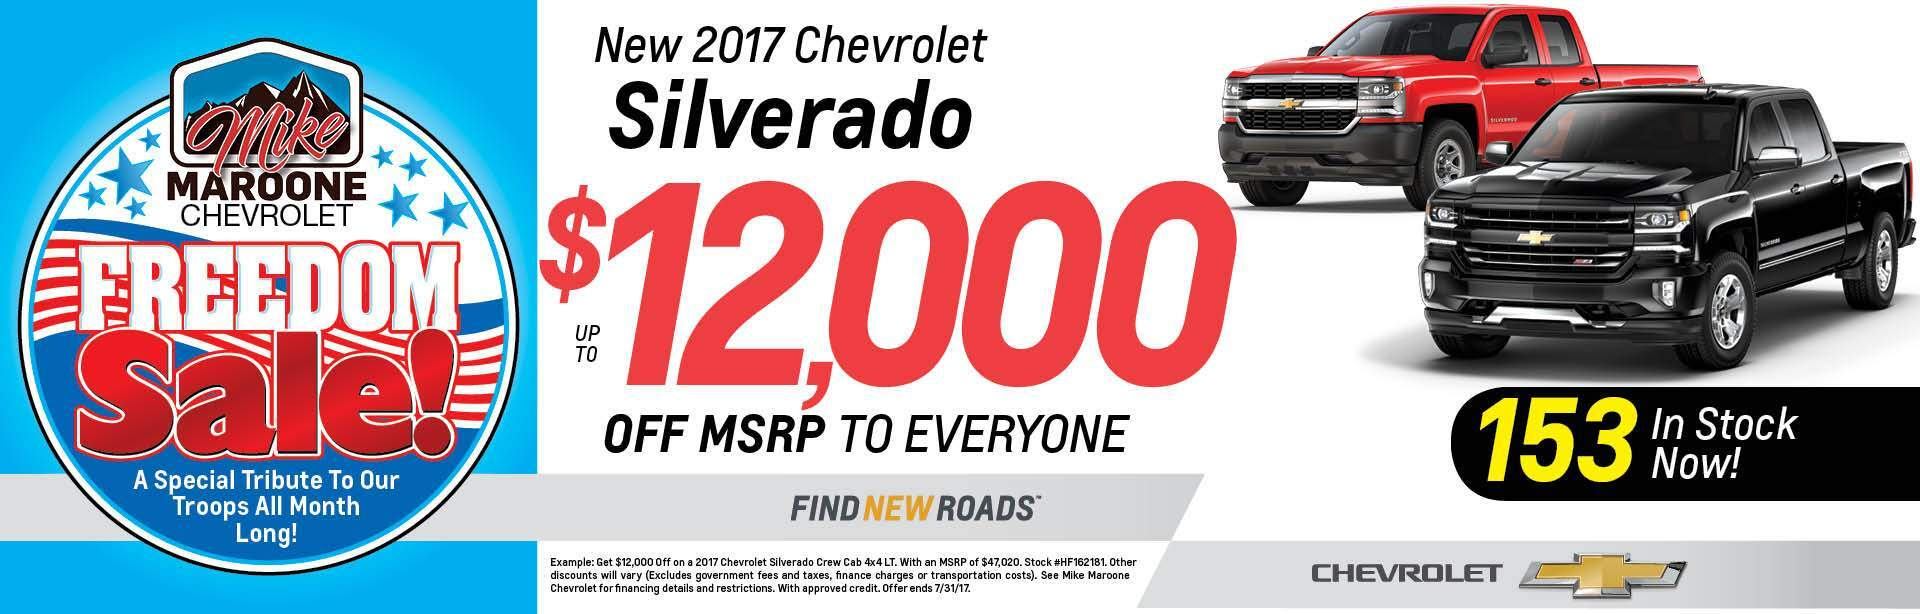 New Chevy Silverado 1500 Colorado Springs